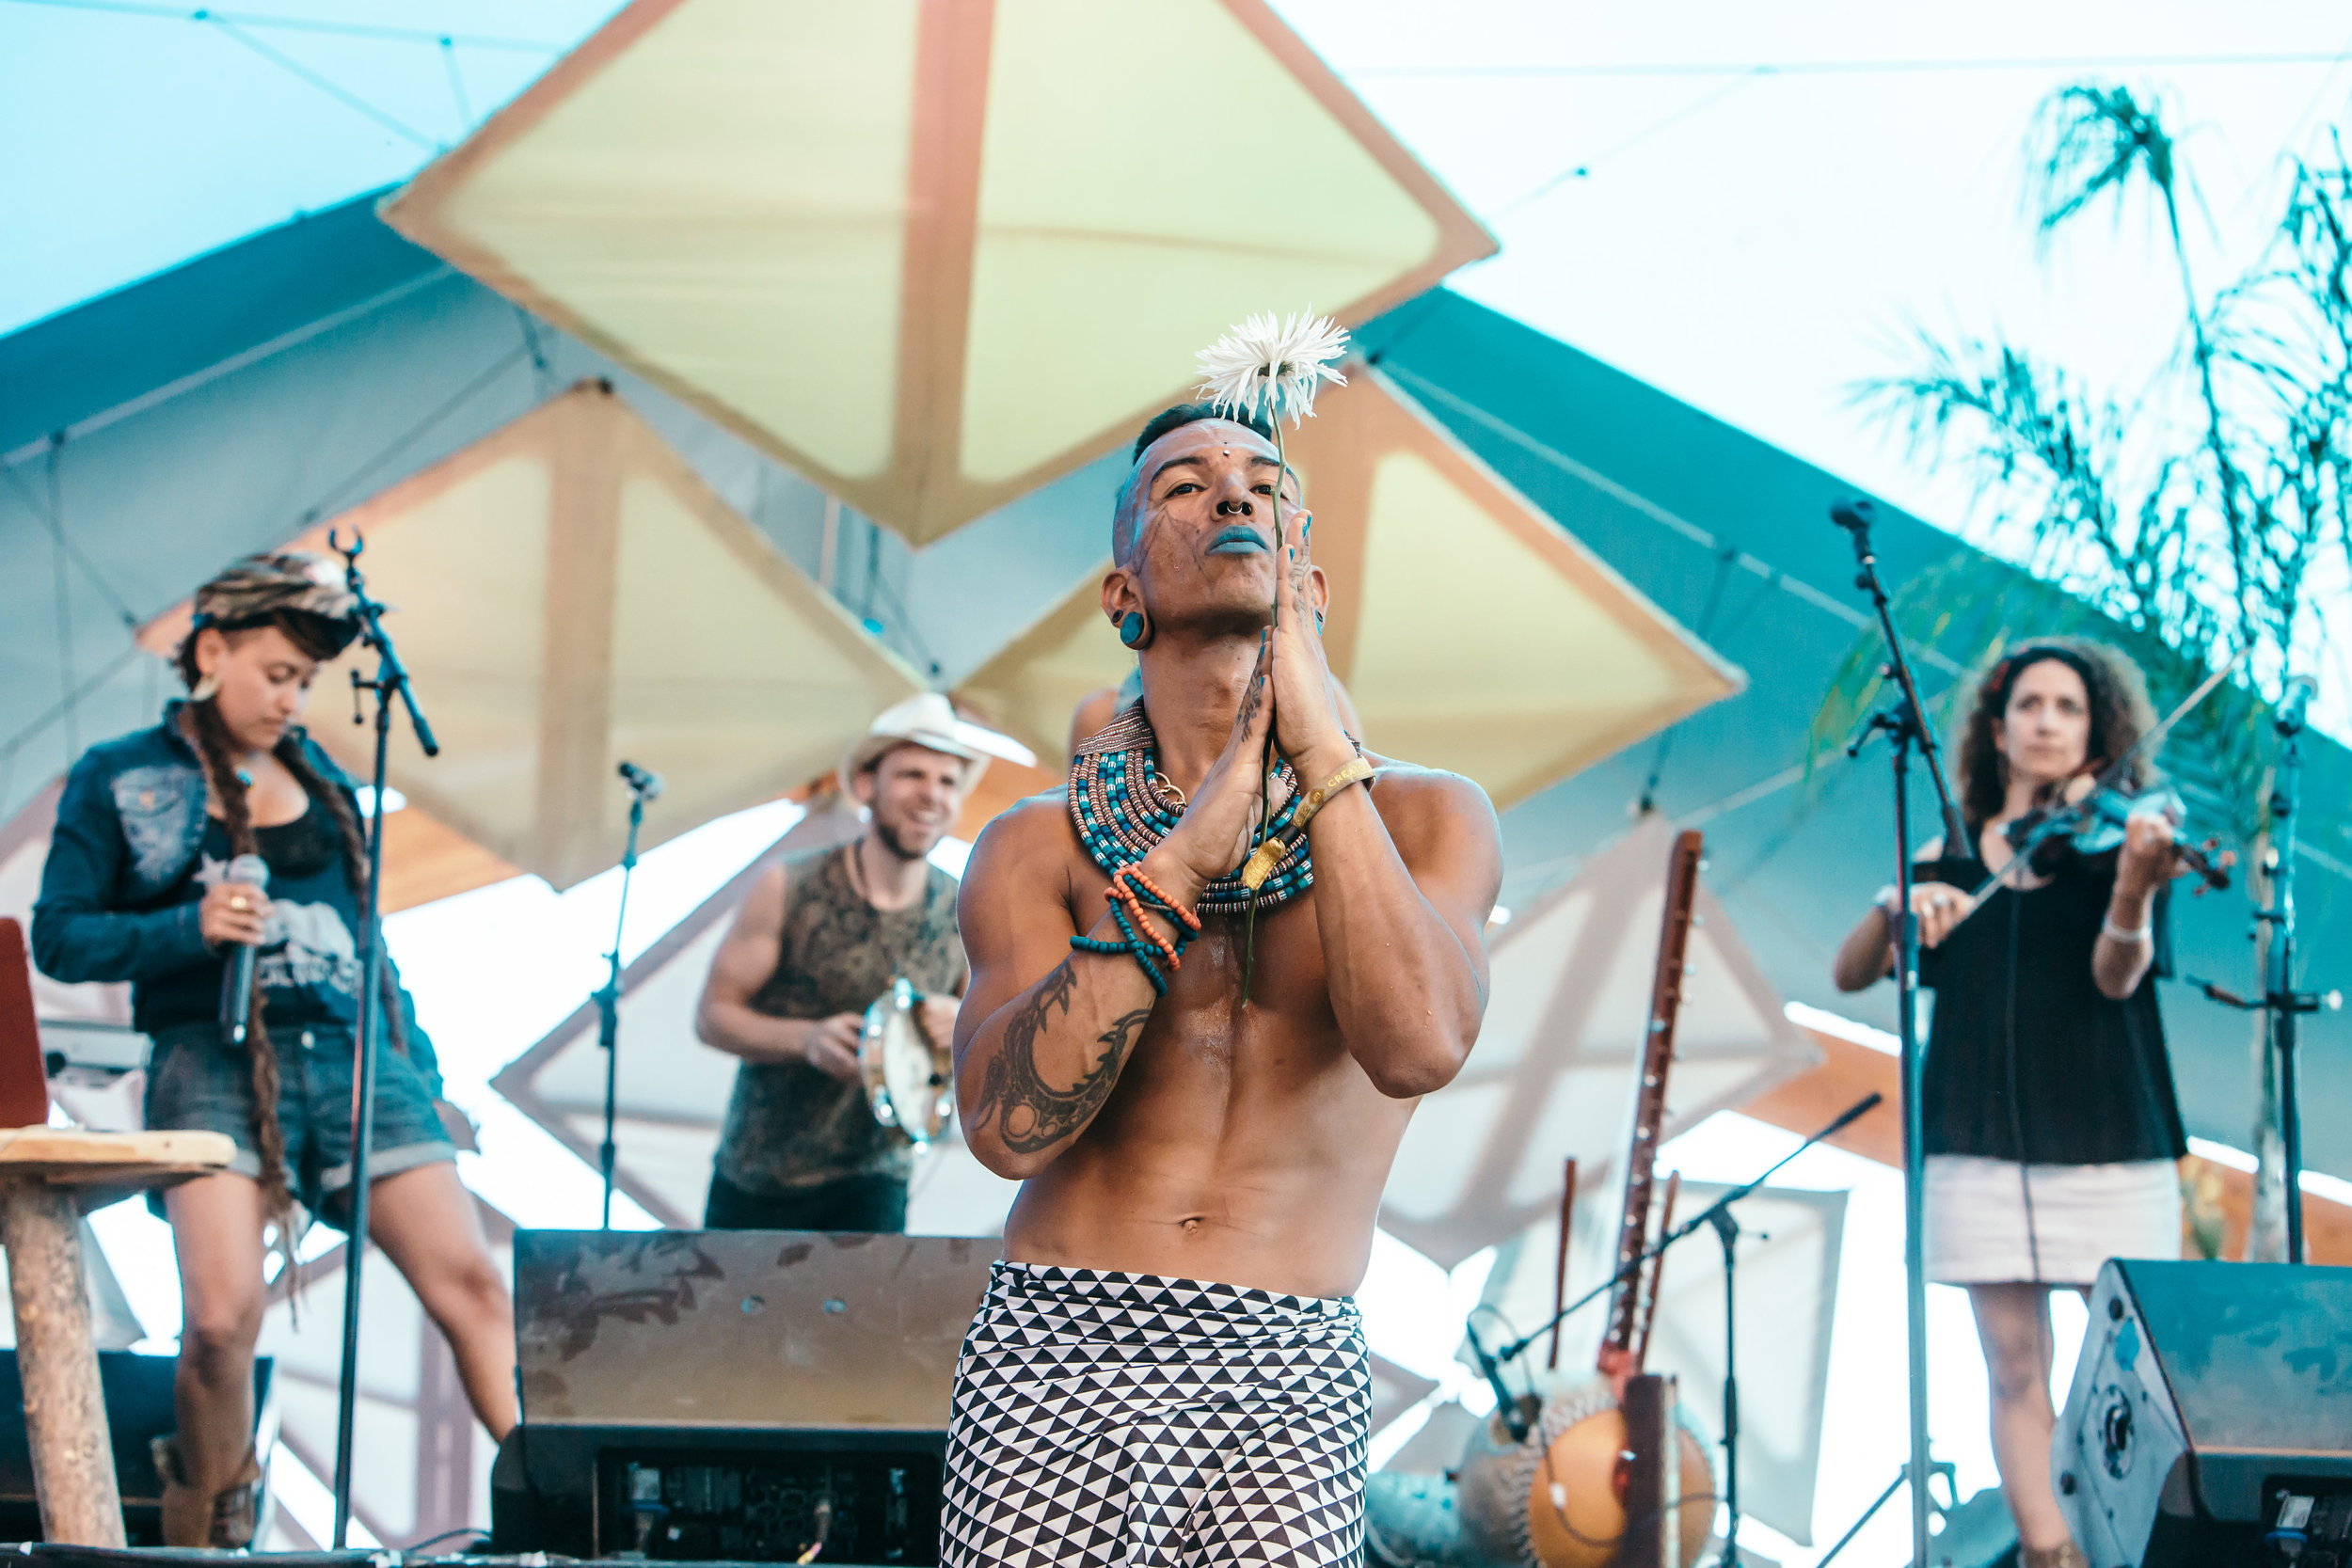 performing with Atasiea Ferguson for Climbing Poetree at Lightning in a Bottle 2017  📷 x Alyssa Keys